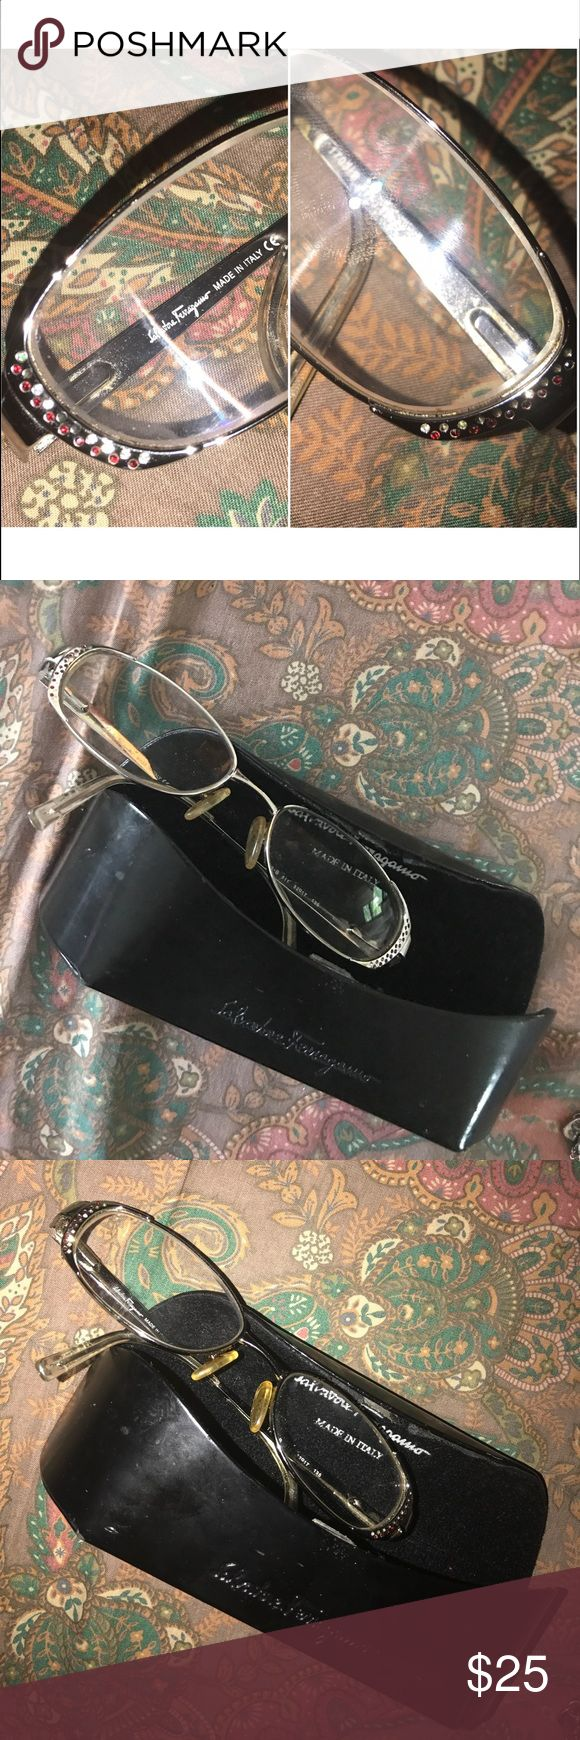 Salvatore Ferragamo red rhinestone enameled frame Rhinestones and enameled in red highlights are these vintage gold frames. Made in Italy. Great condition. Ferragamo Accessories Glasses